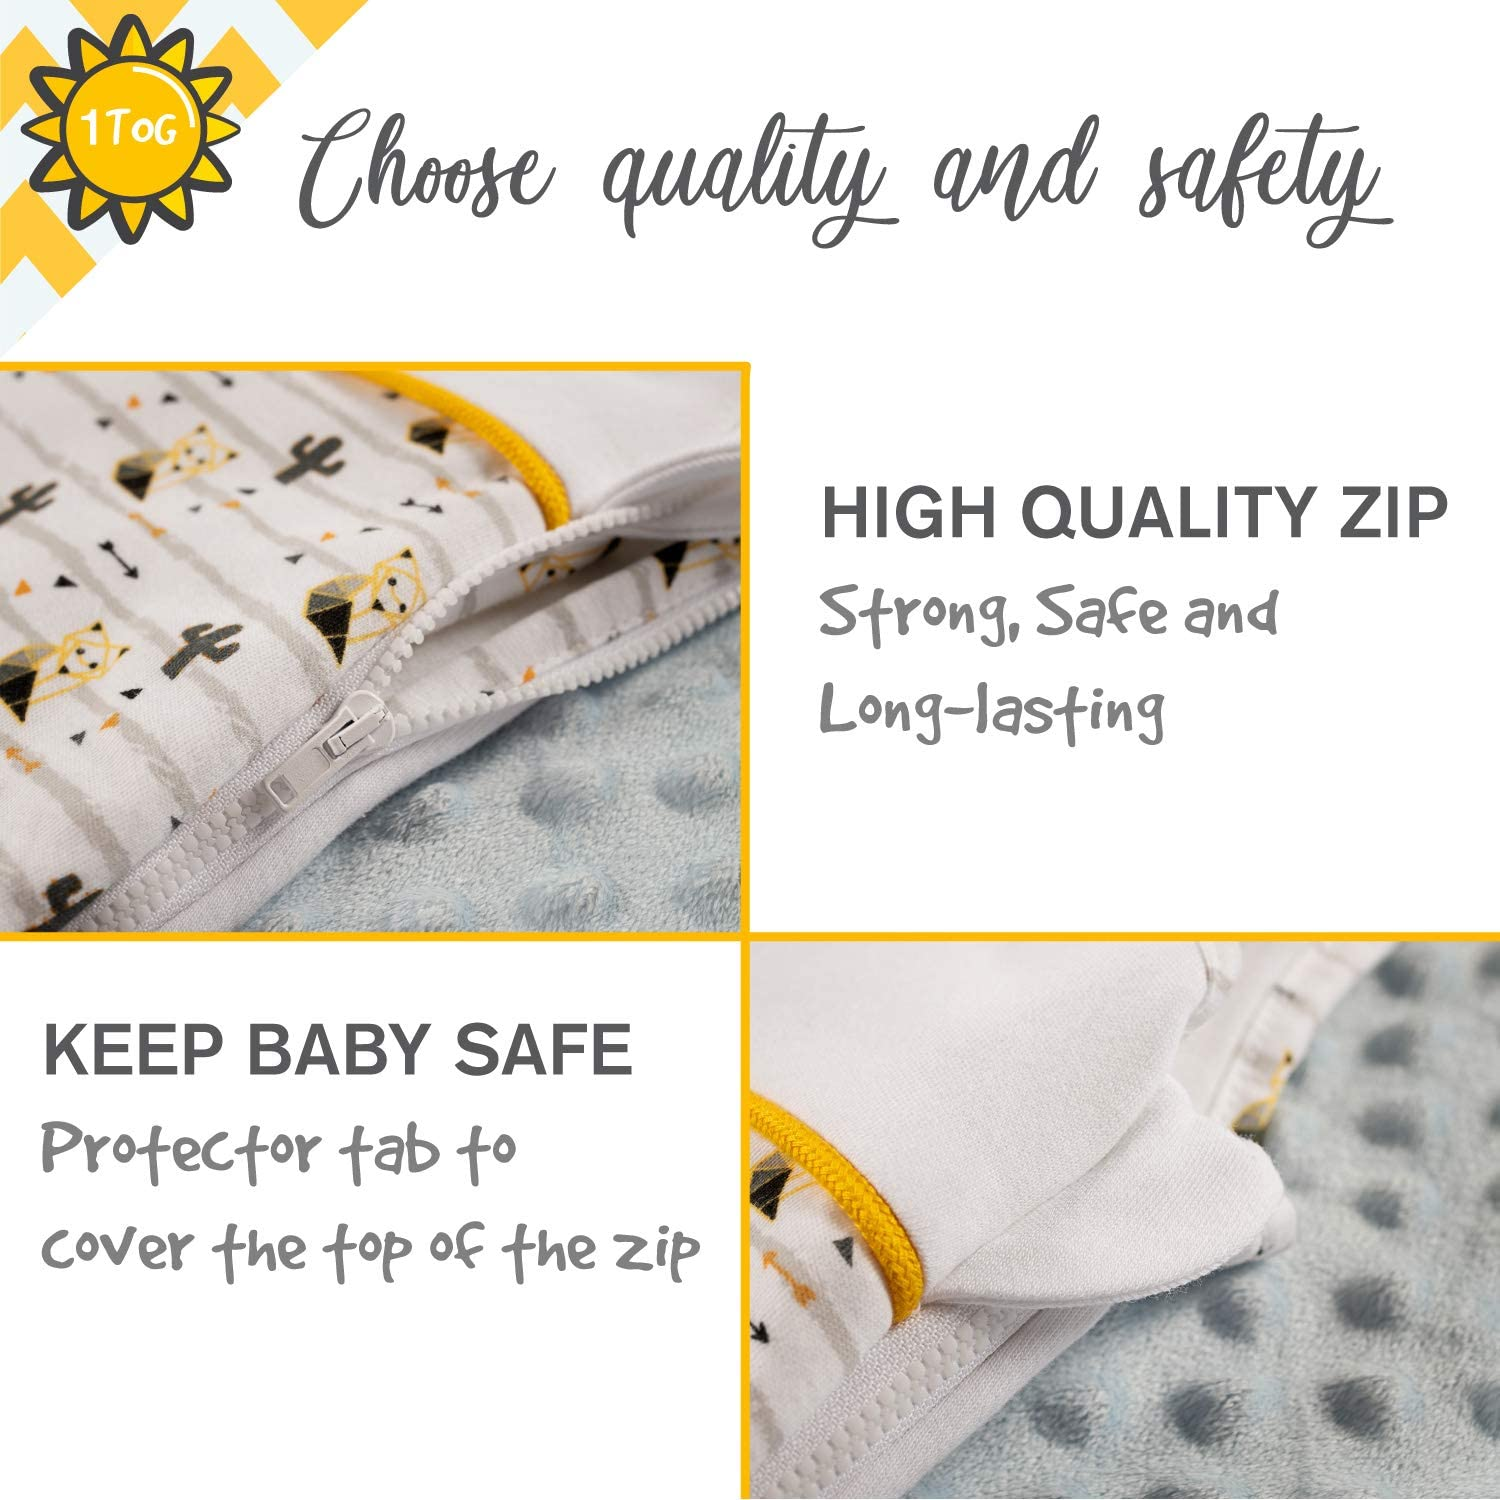 Chemical- Free Guaranteed Organic Cotton 70 cm Comfortable Sleeping Bag 2.5 Tog Soft by Sweety Fox 0-6 Months Safe Nights for Toddlers French Design Baby Sleeping Bag 4 Seasons